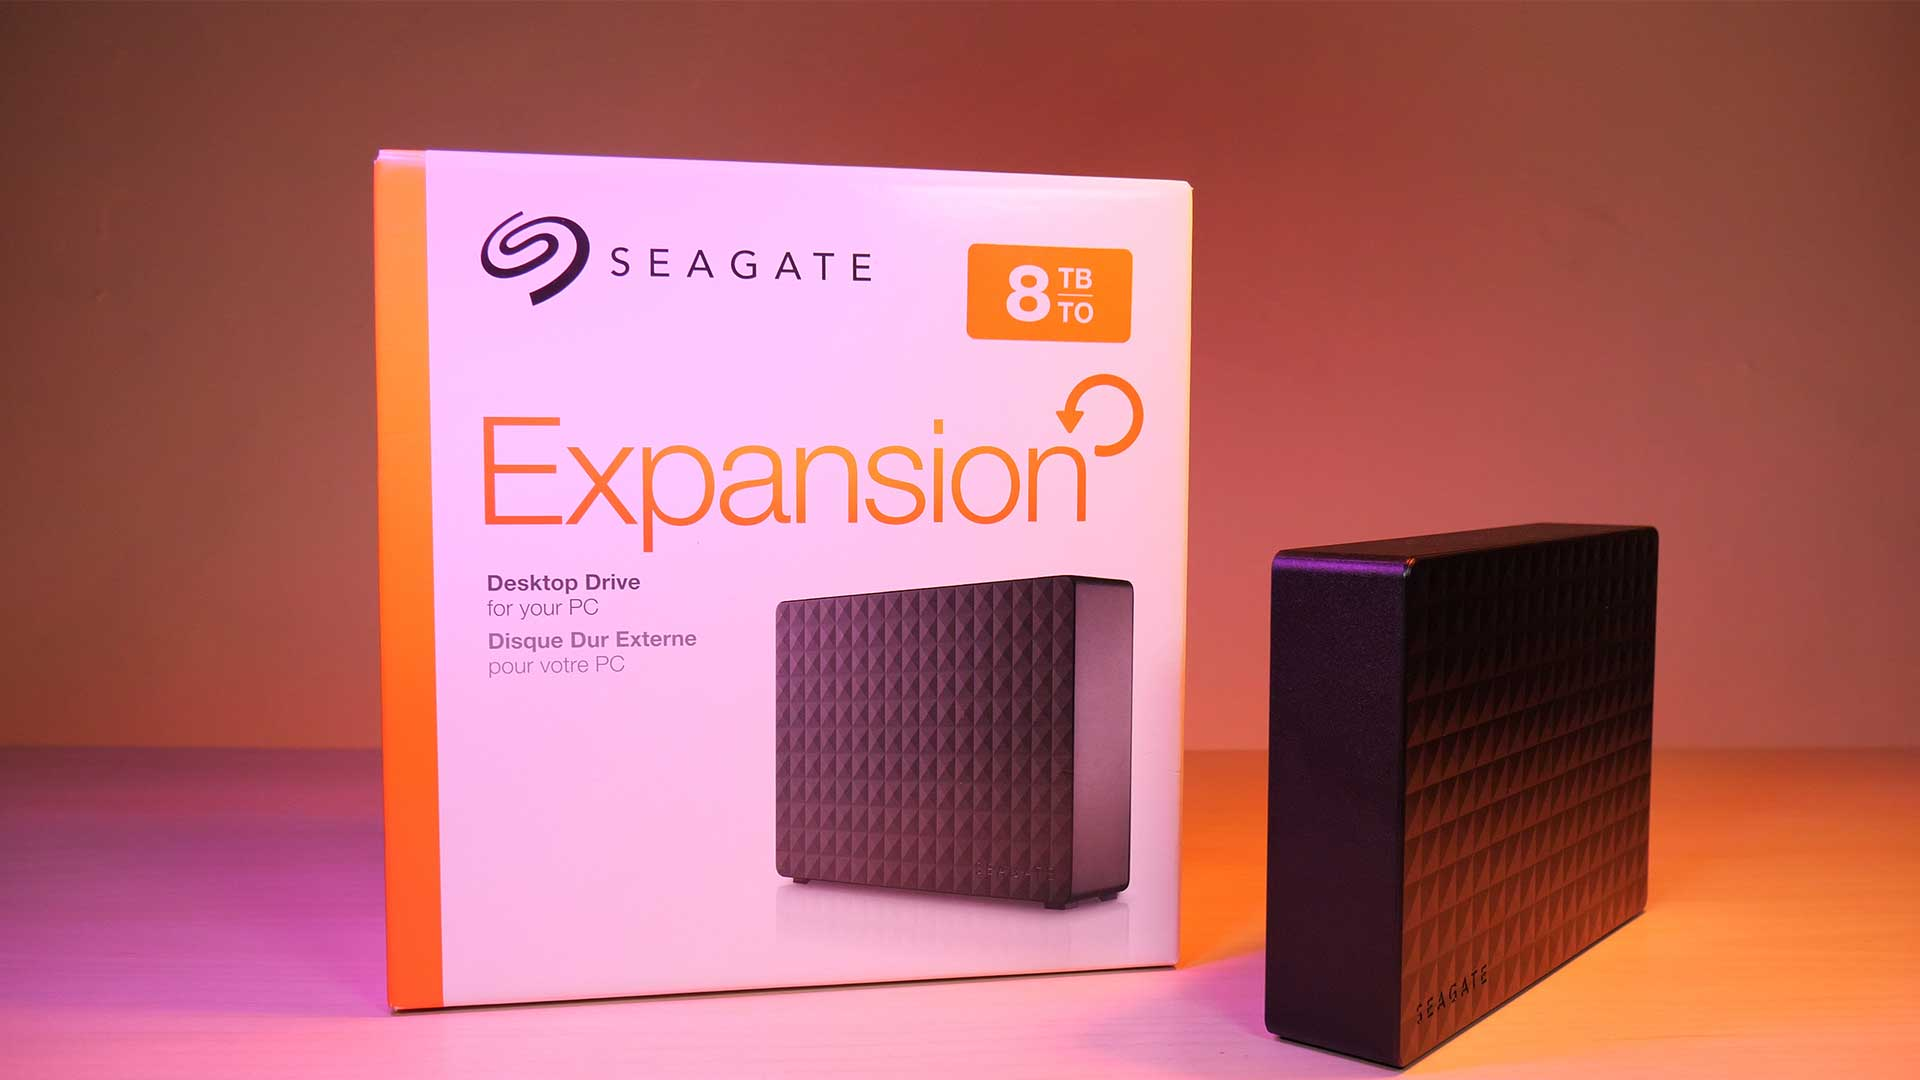 Seagate-Expansion-8TB-1